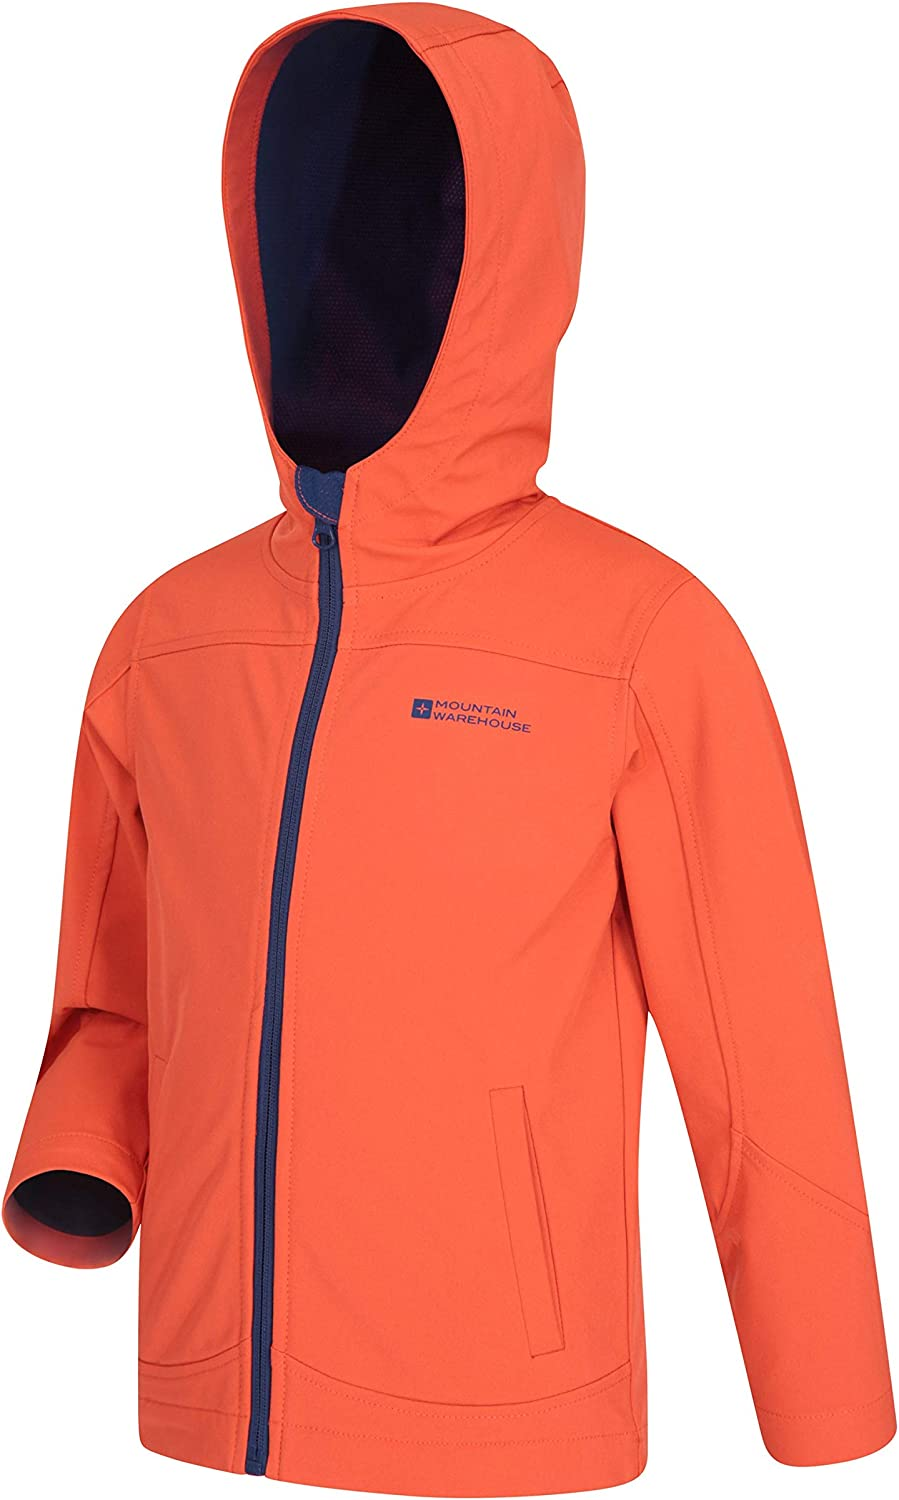 Wind /& Water Resistant Childrens Shell Jacket Fleece Lined Hood Mountain Warehouse Exodus Kids Softshell Lightweight for Travelling Orange 7-8 Years